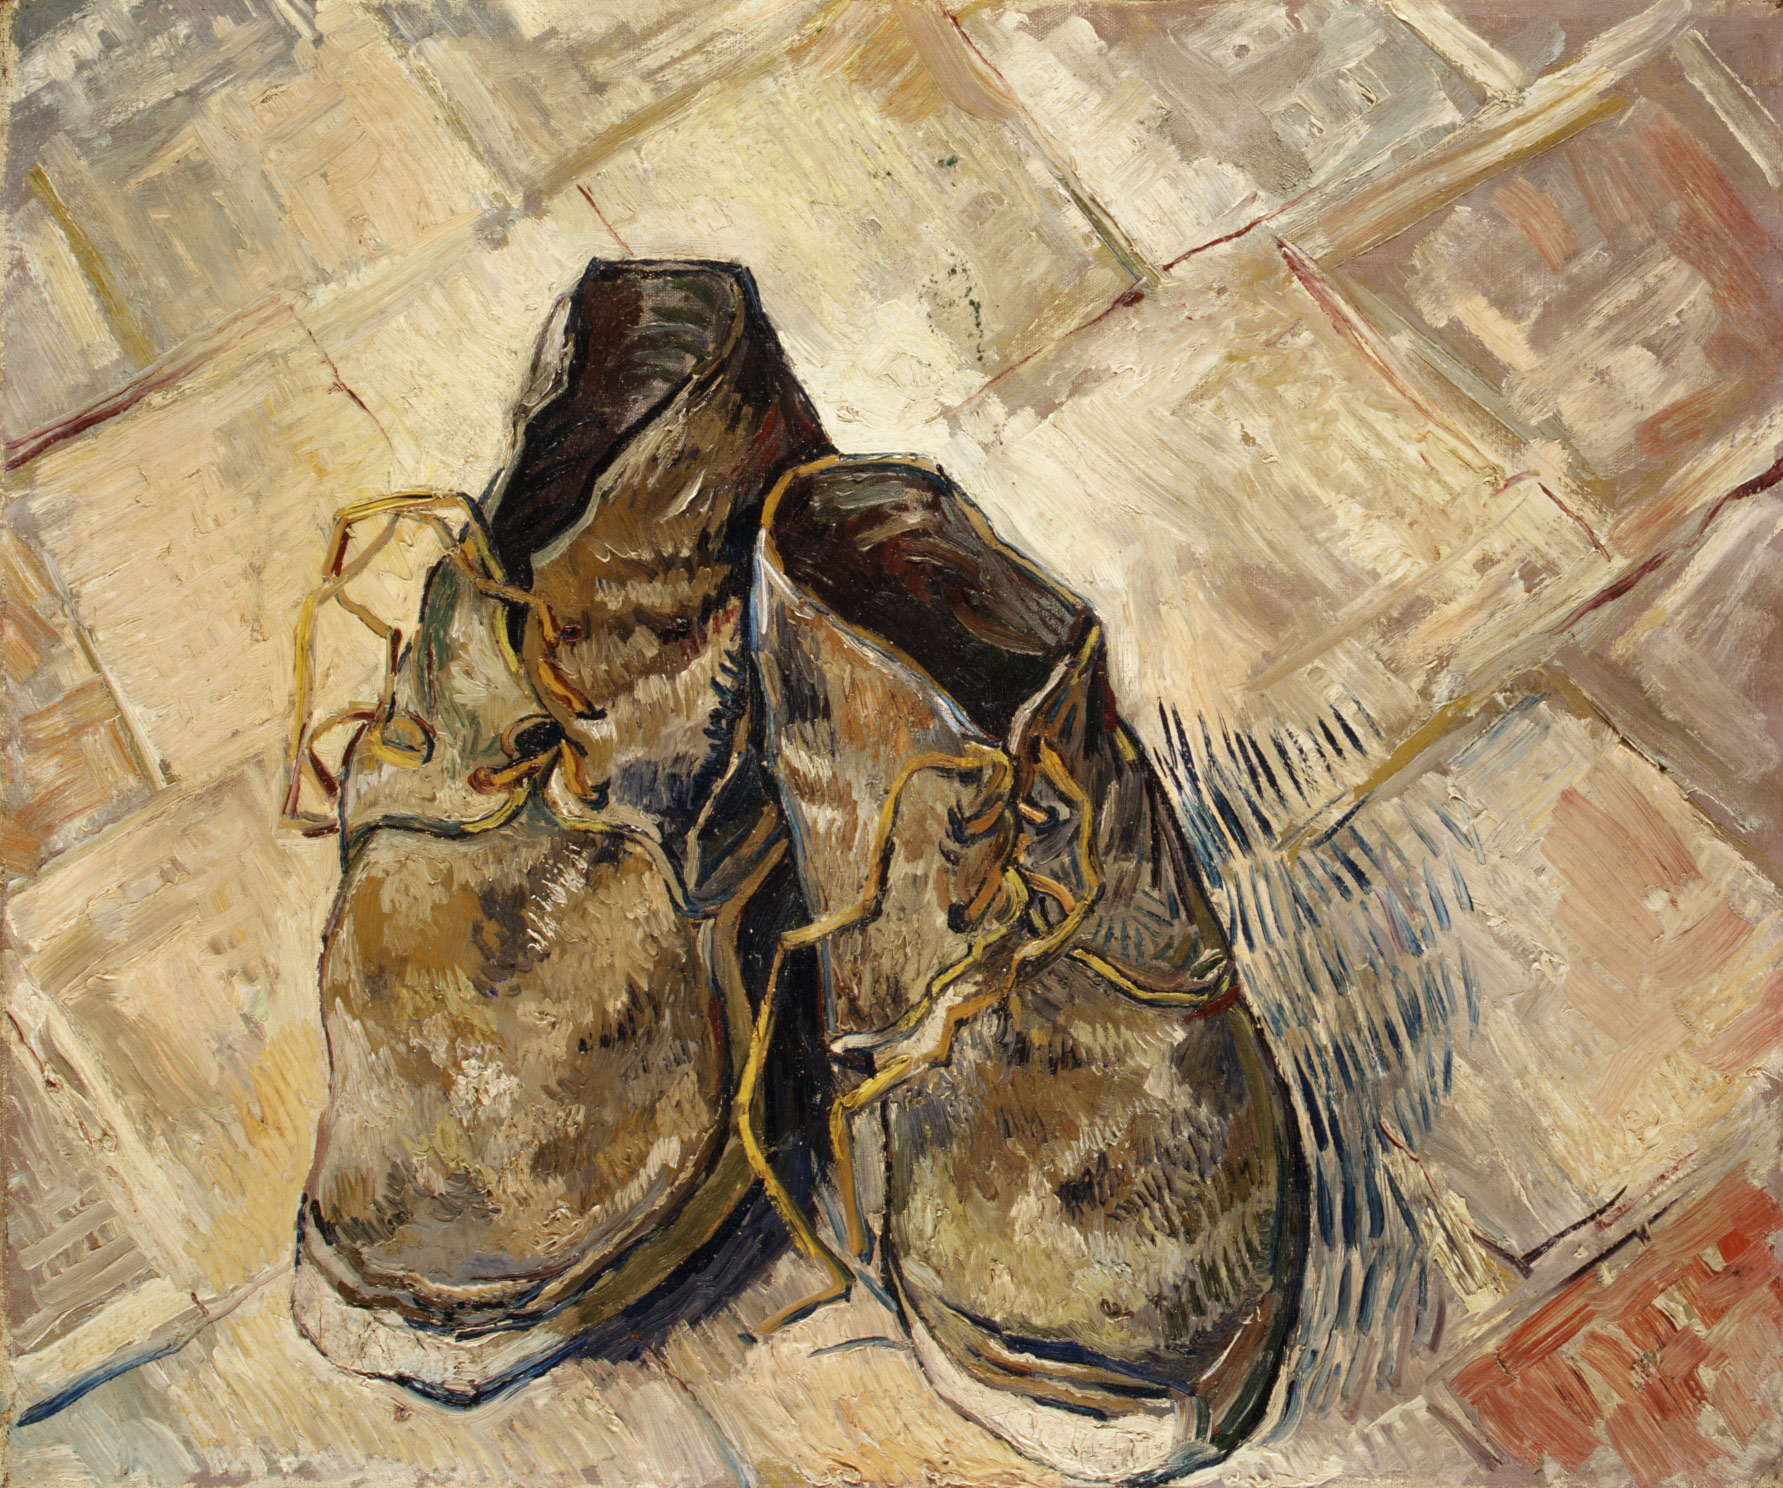 Shoes  Vincent Van Gogh    Work Of Art  Heilbrunn  Captions Shoes  Buy Presentation also Yellow Wallpaper Essay  Topics For Essays In English